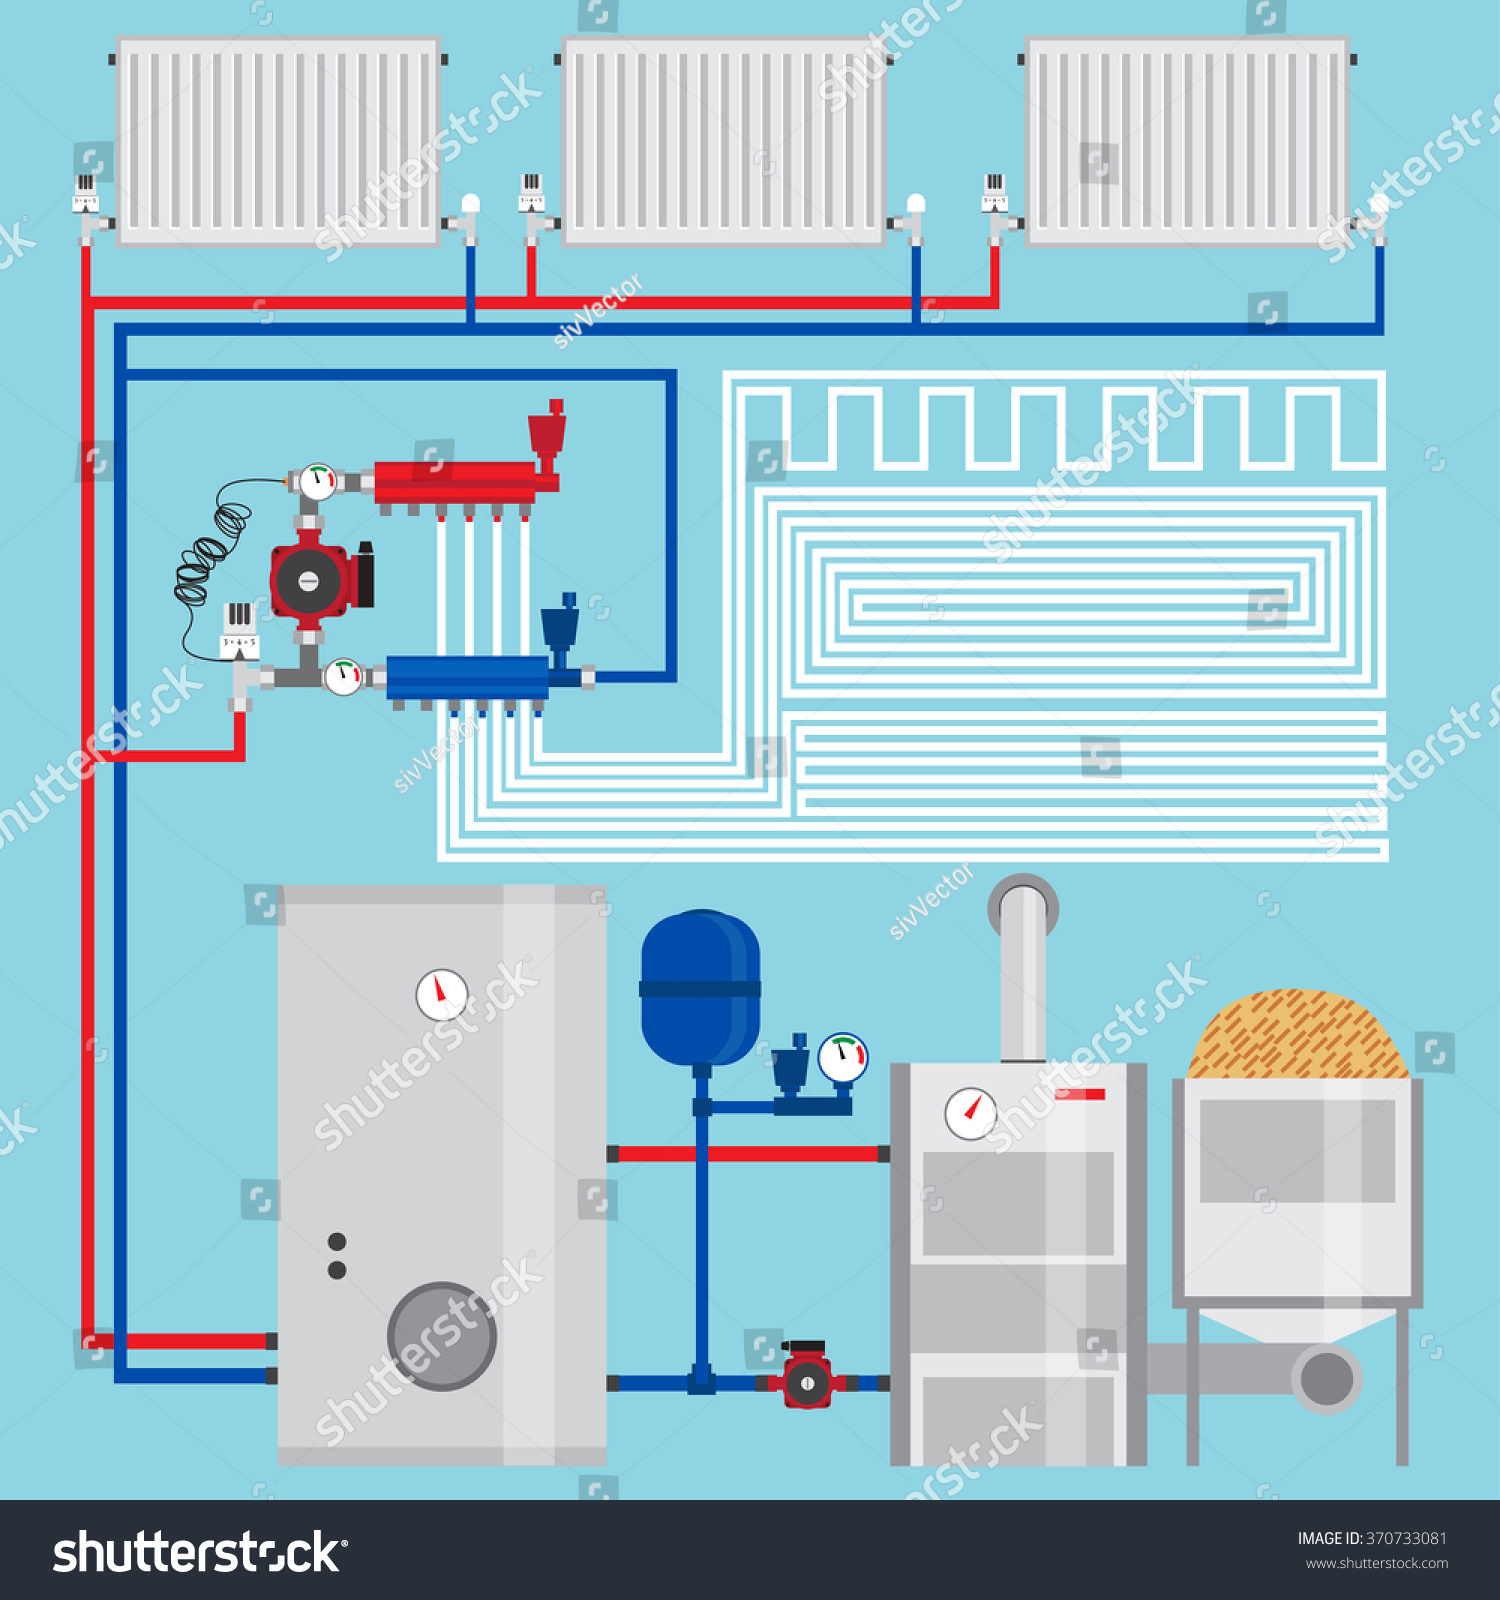 Energysaving Heating System Pellet Boiler Heating Stock Vector ...